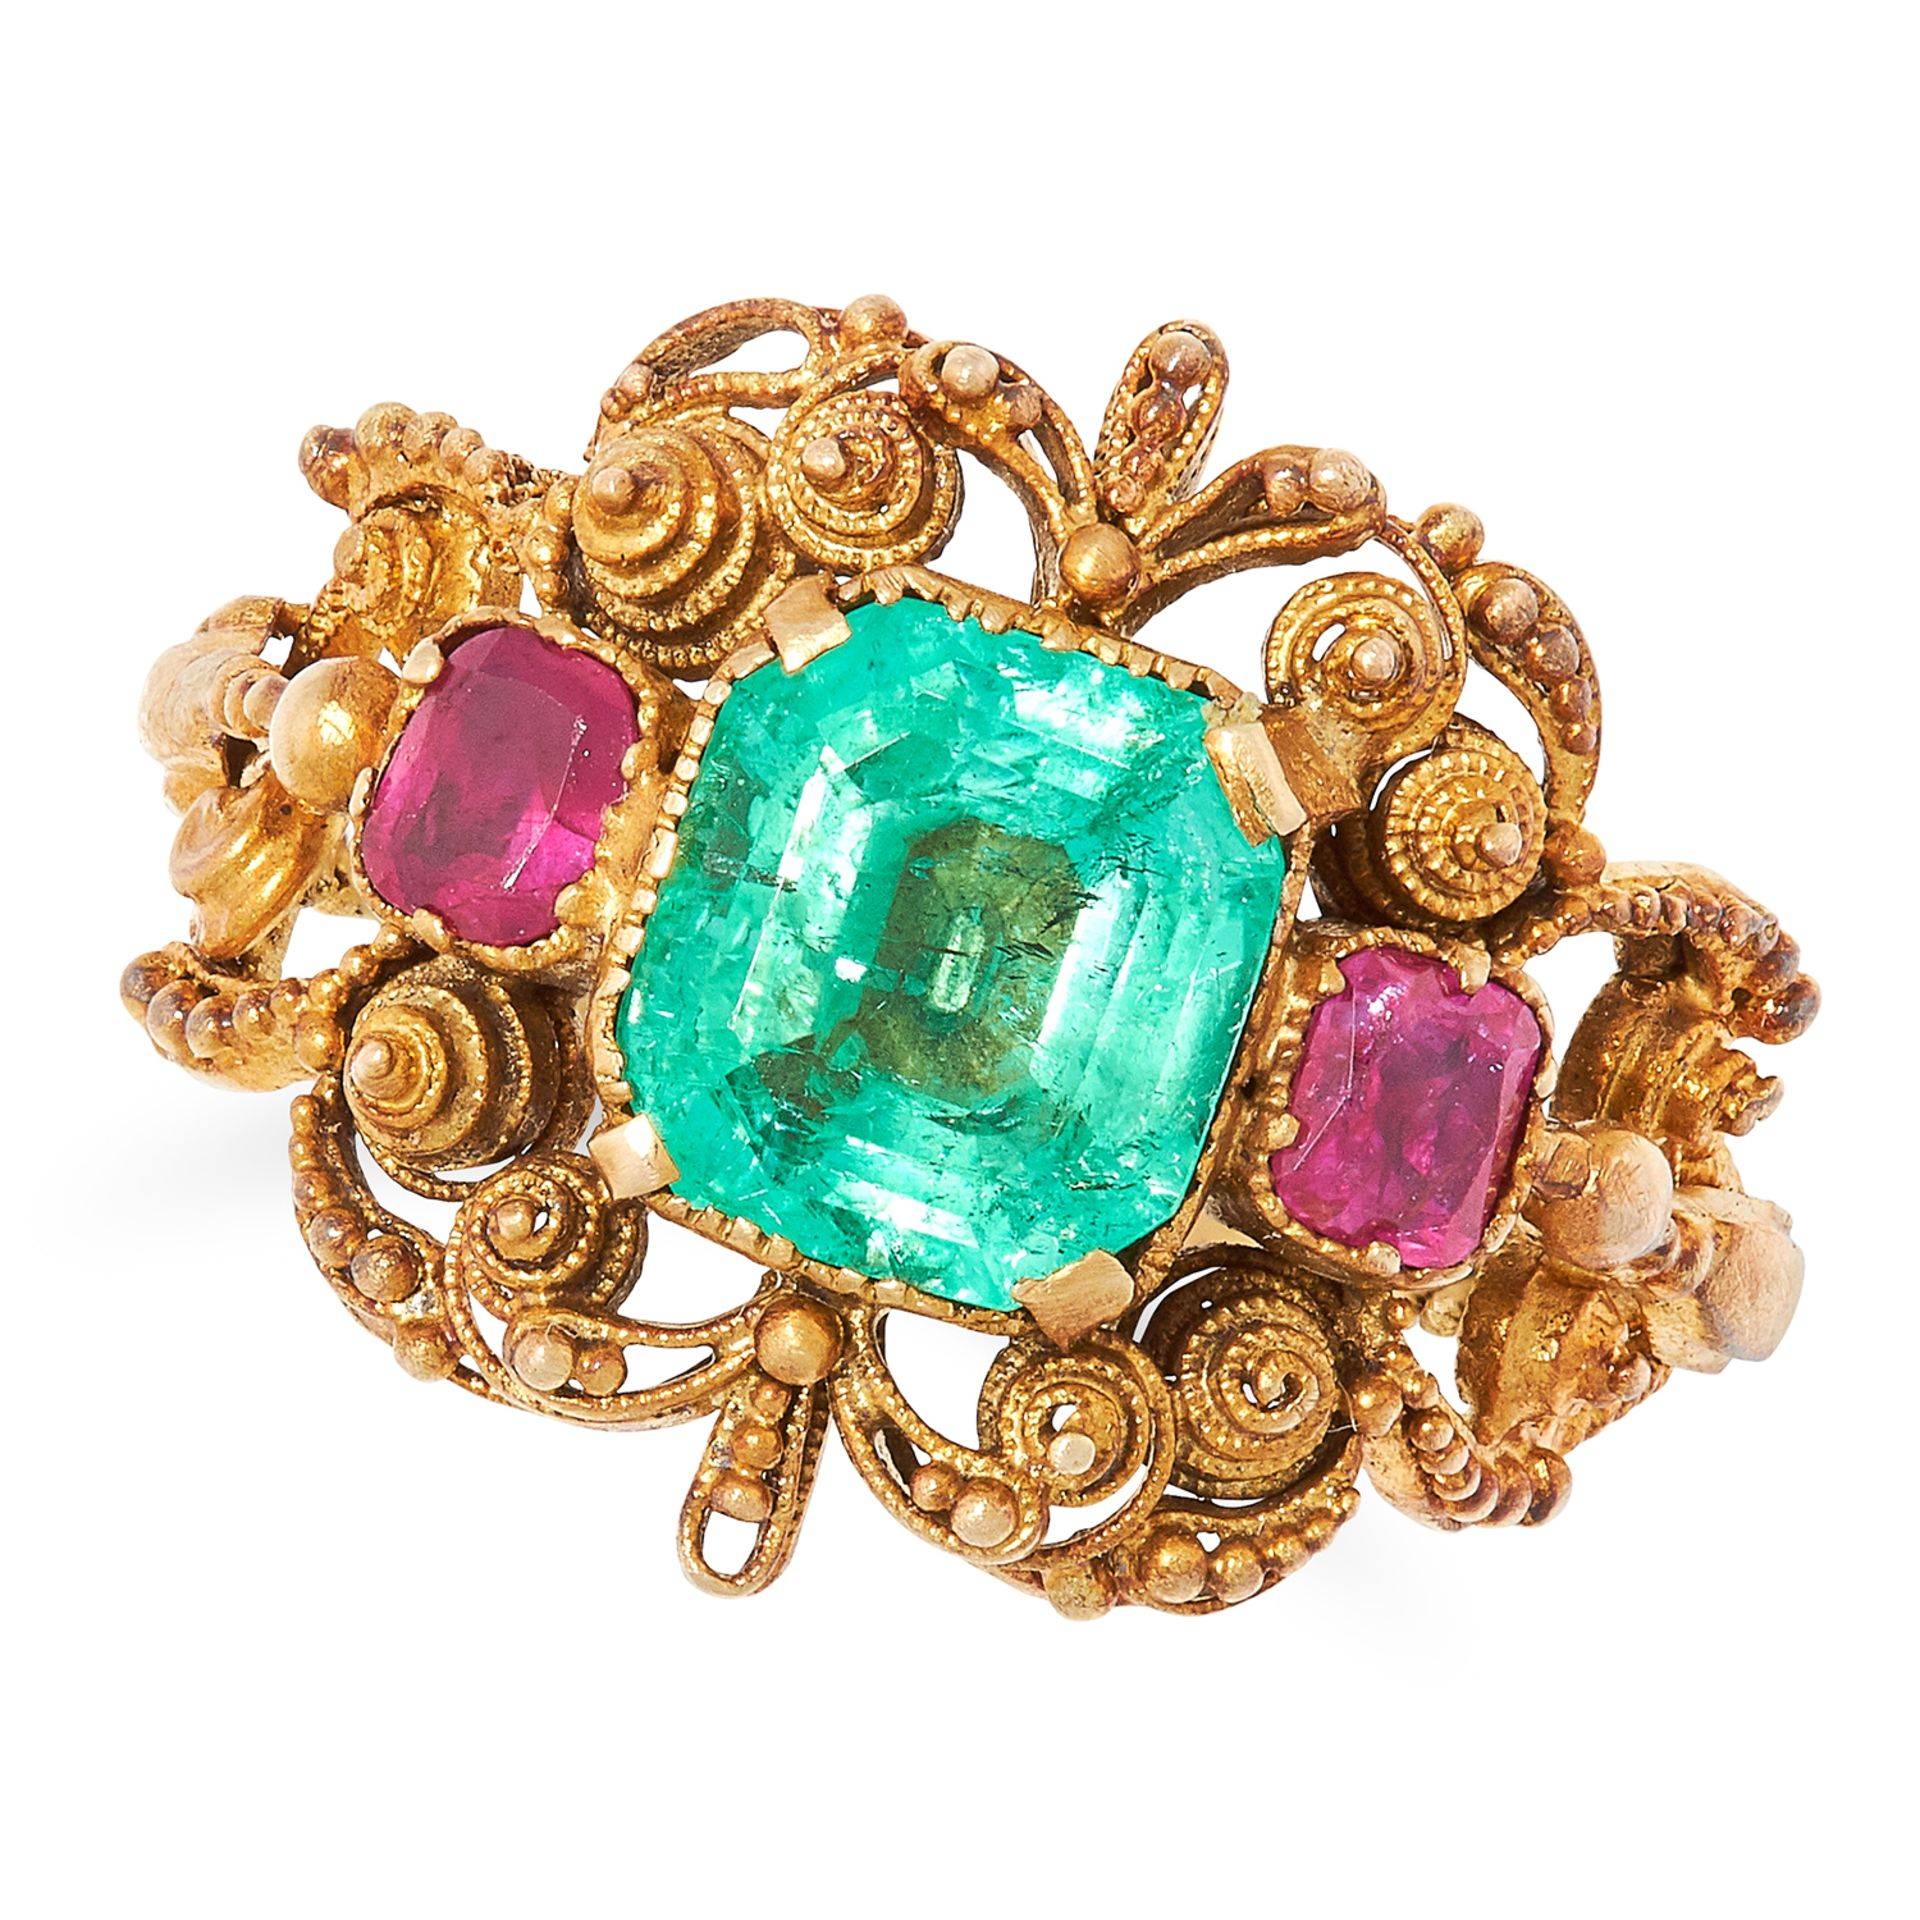 ANTIQUE GEORGIAN EMERALD AND RUBY RING set with an emerald cut emerald of 1.74 carats and two